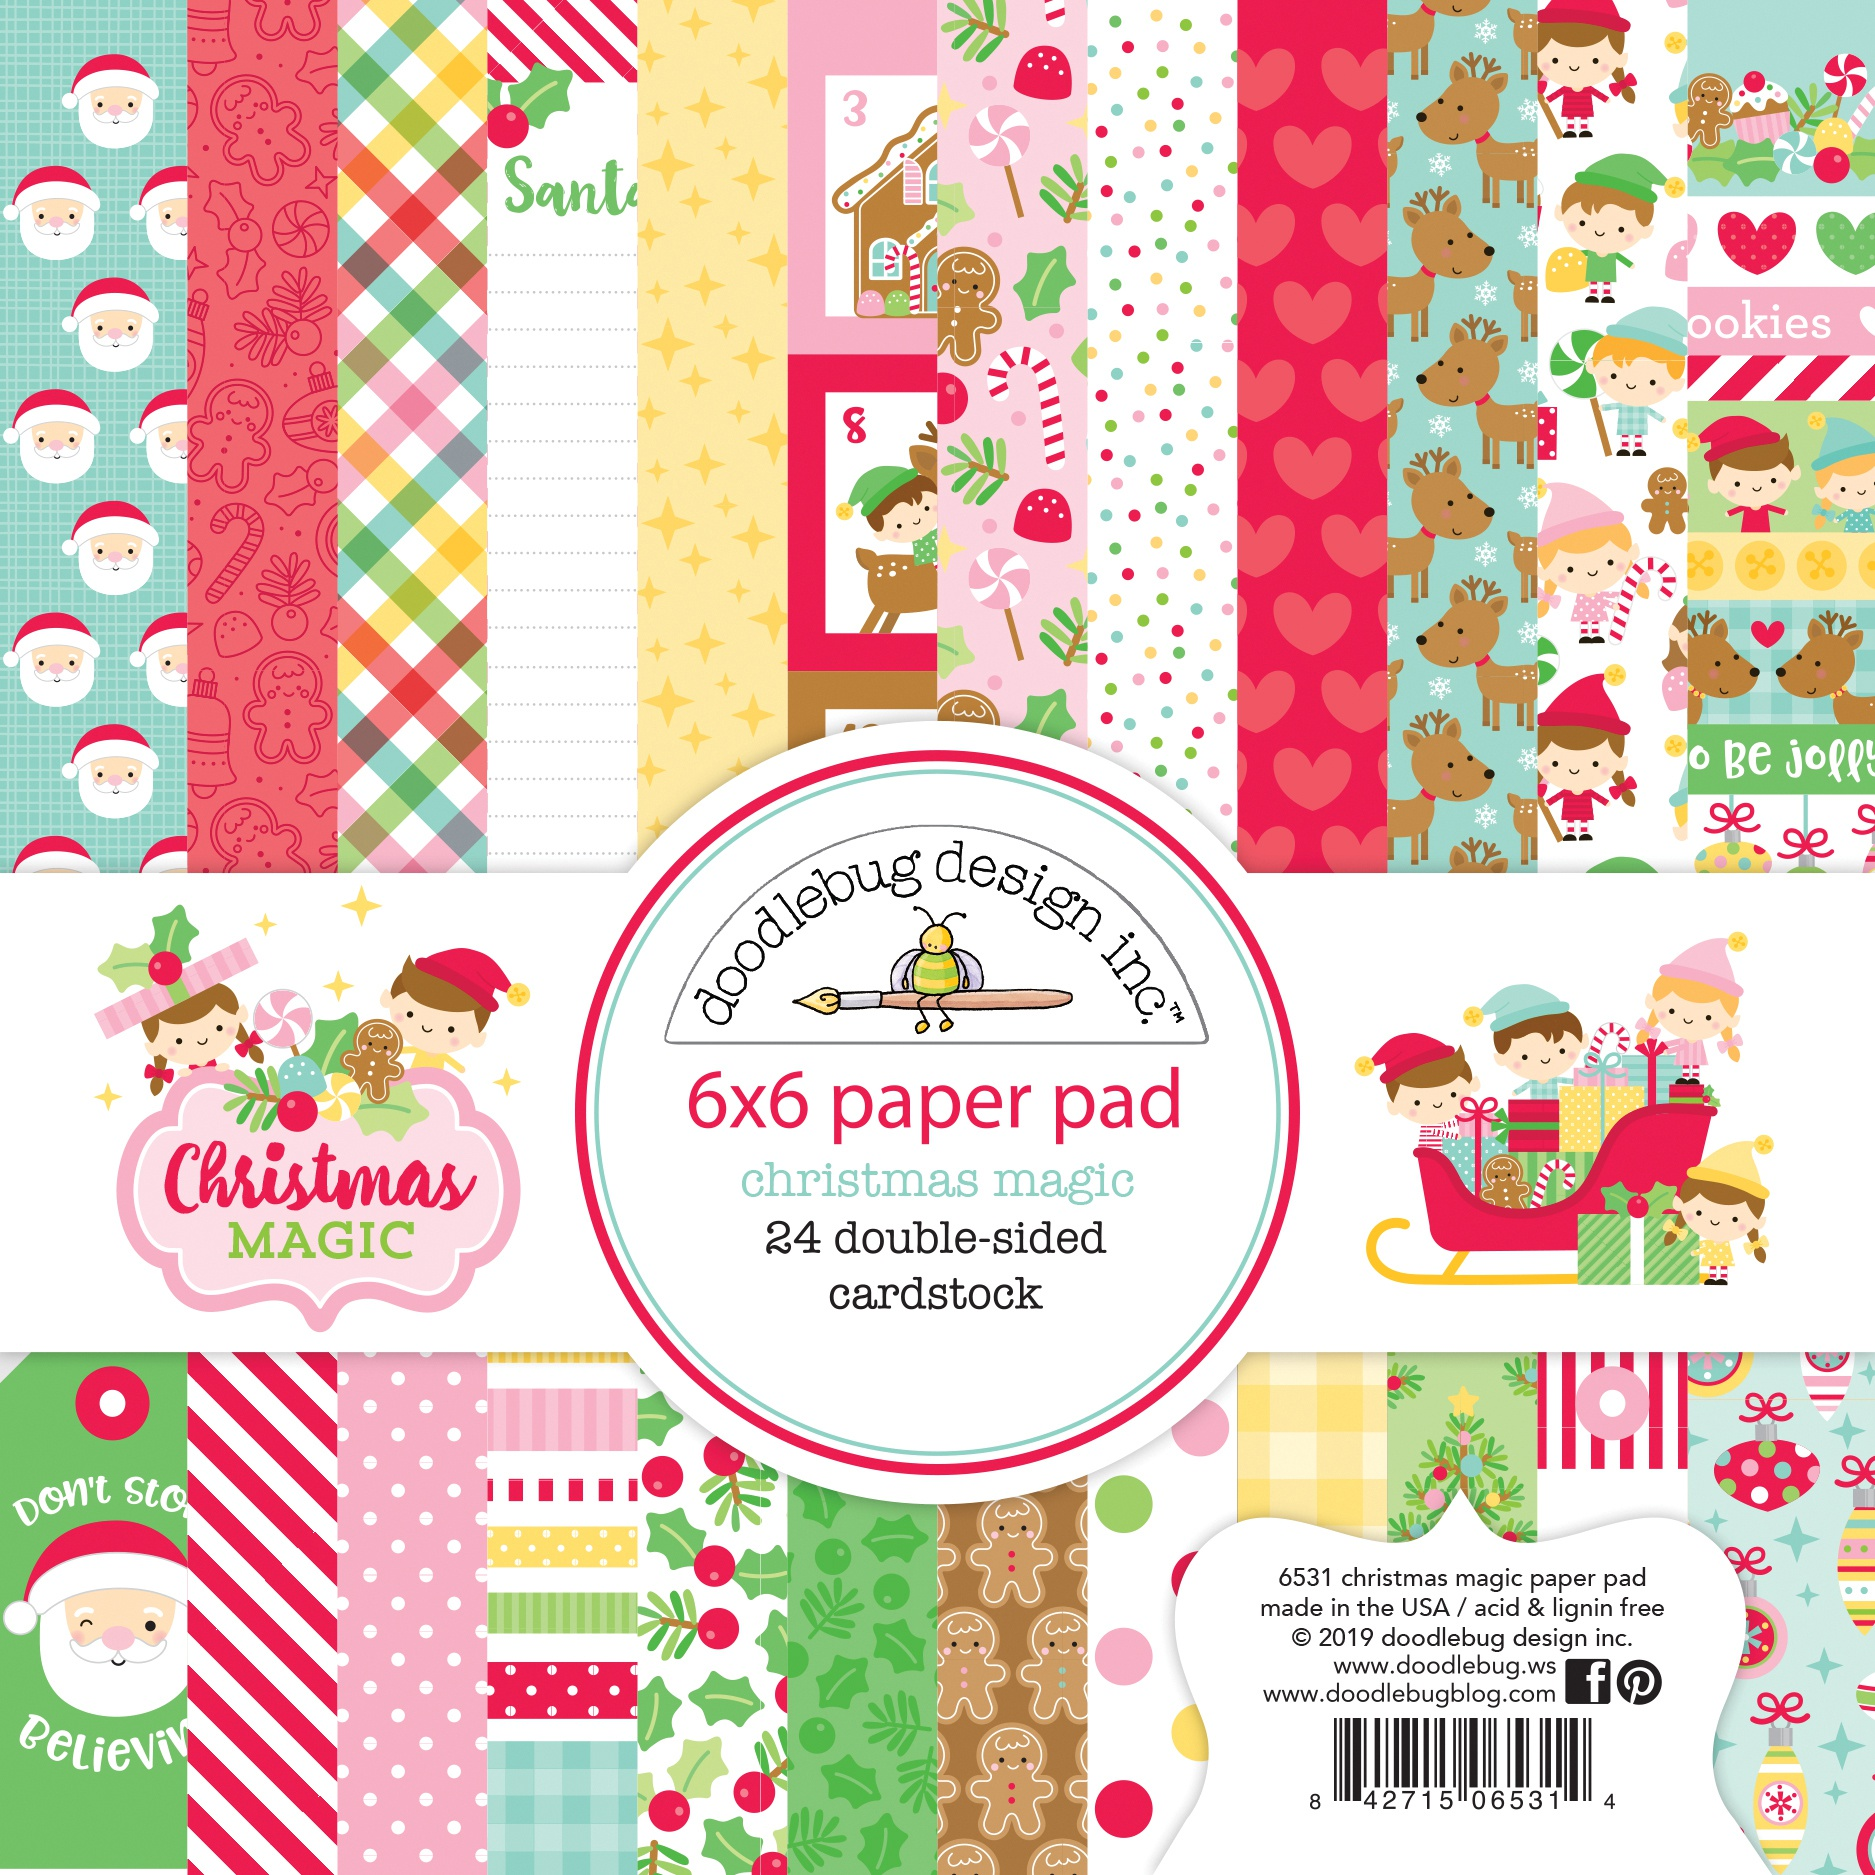 Doodlebug Double-Sided Paper Pad 6X6 24/Pkg-Christmas Magic, 12 Designs/2 Each